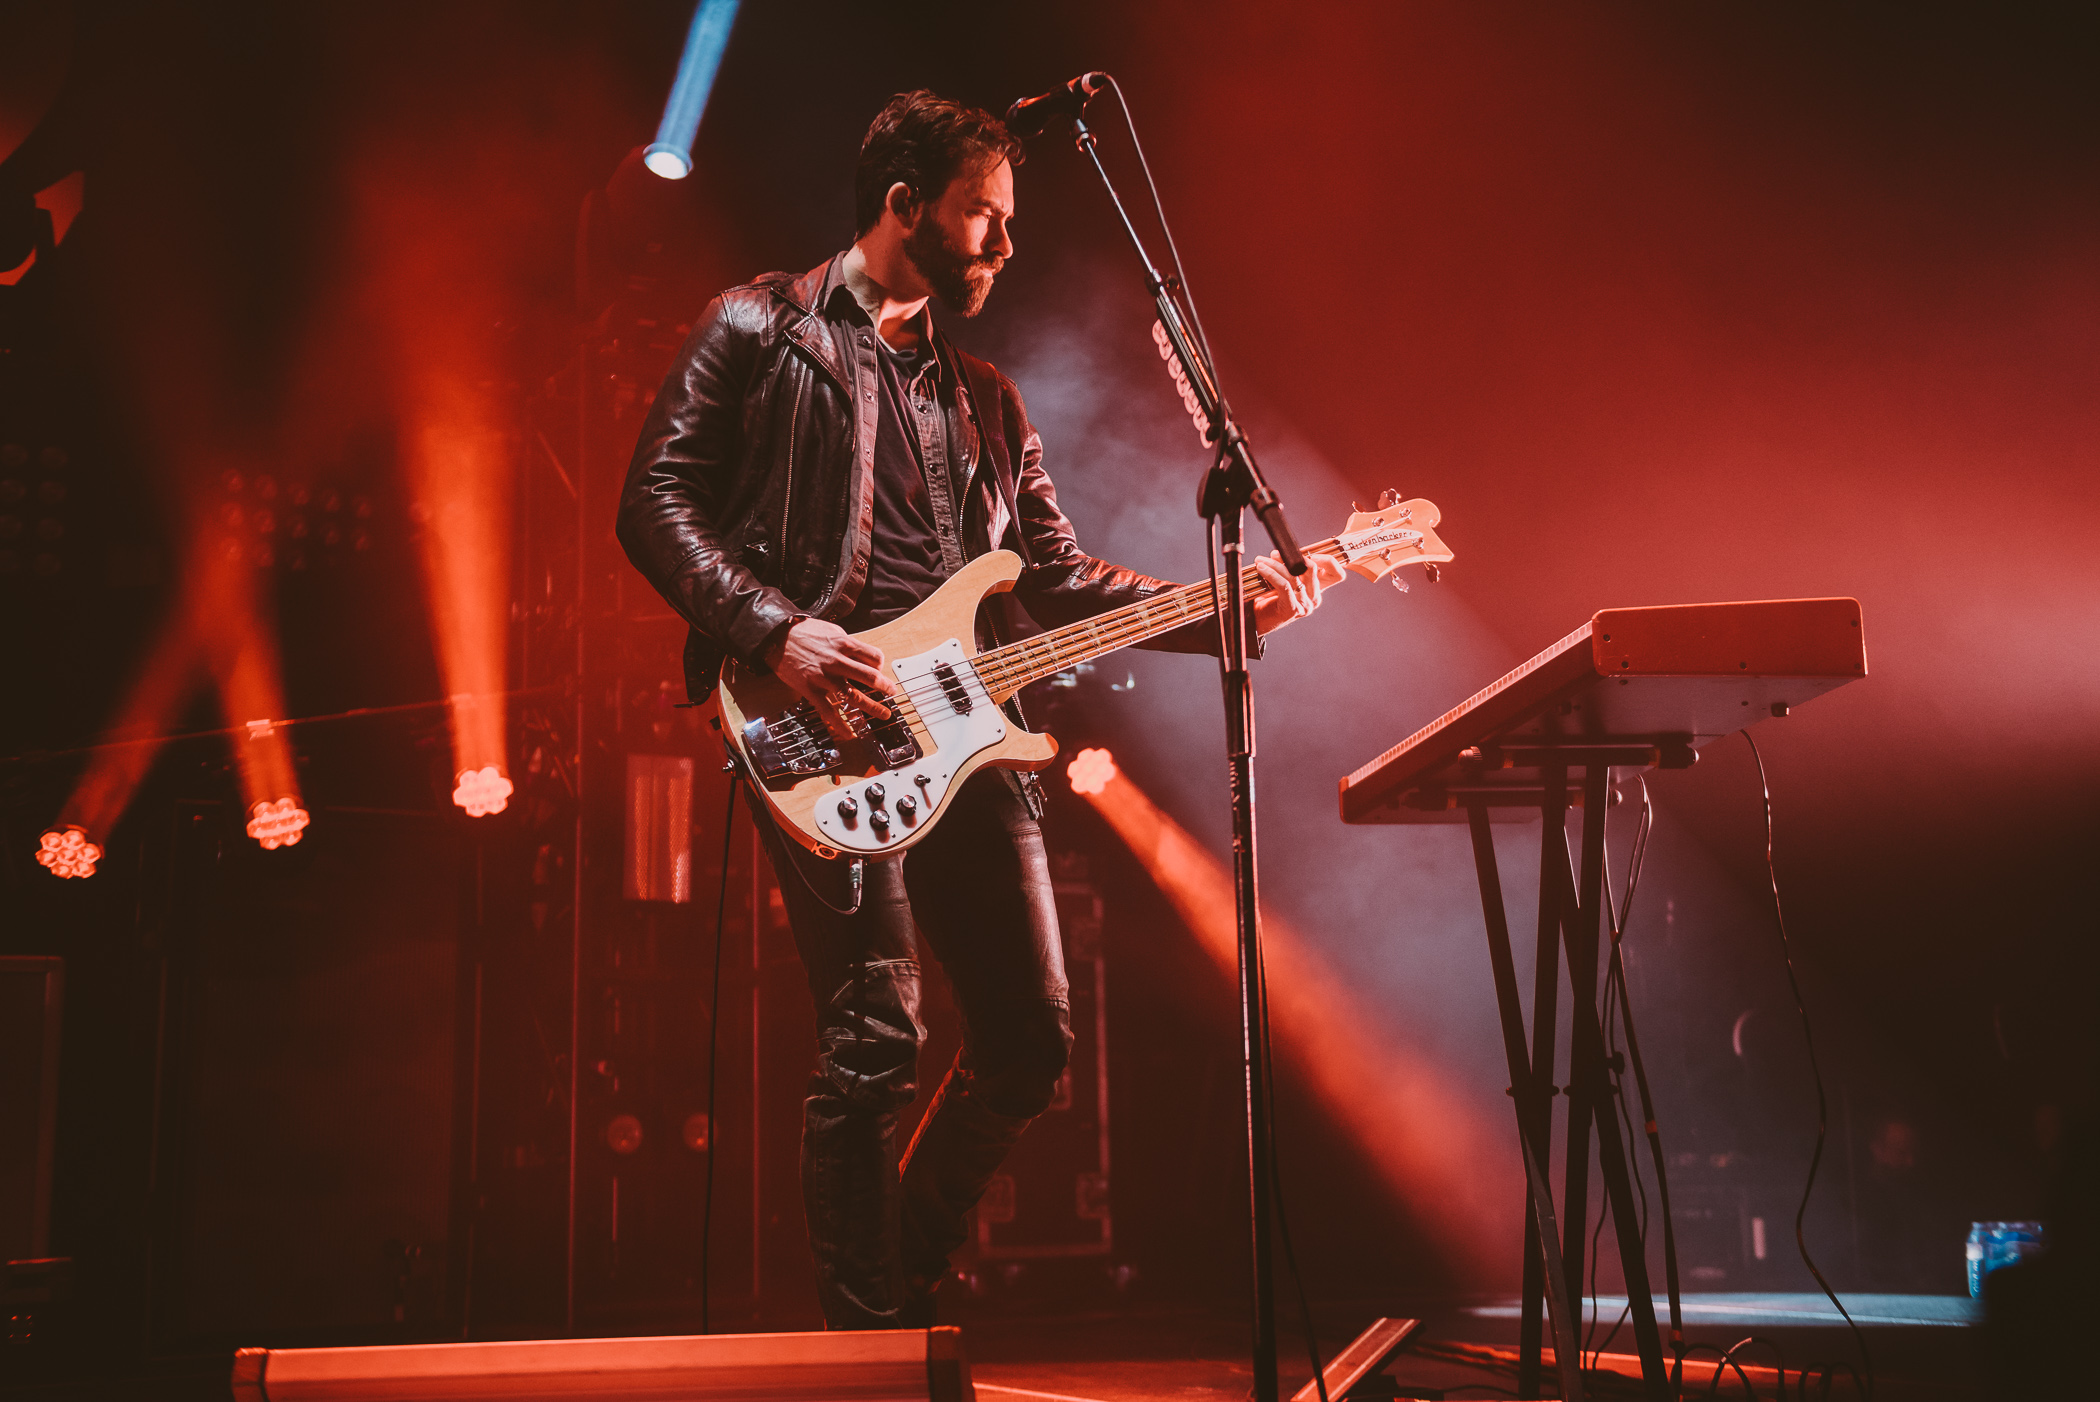 2_Halestorm-Abbotsford_Centre-Timothy_Nguyen-20180127 (2 of 15).jpg